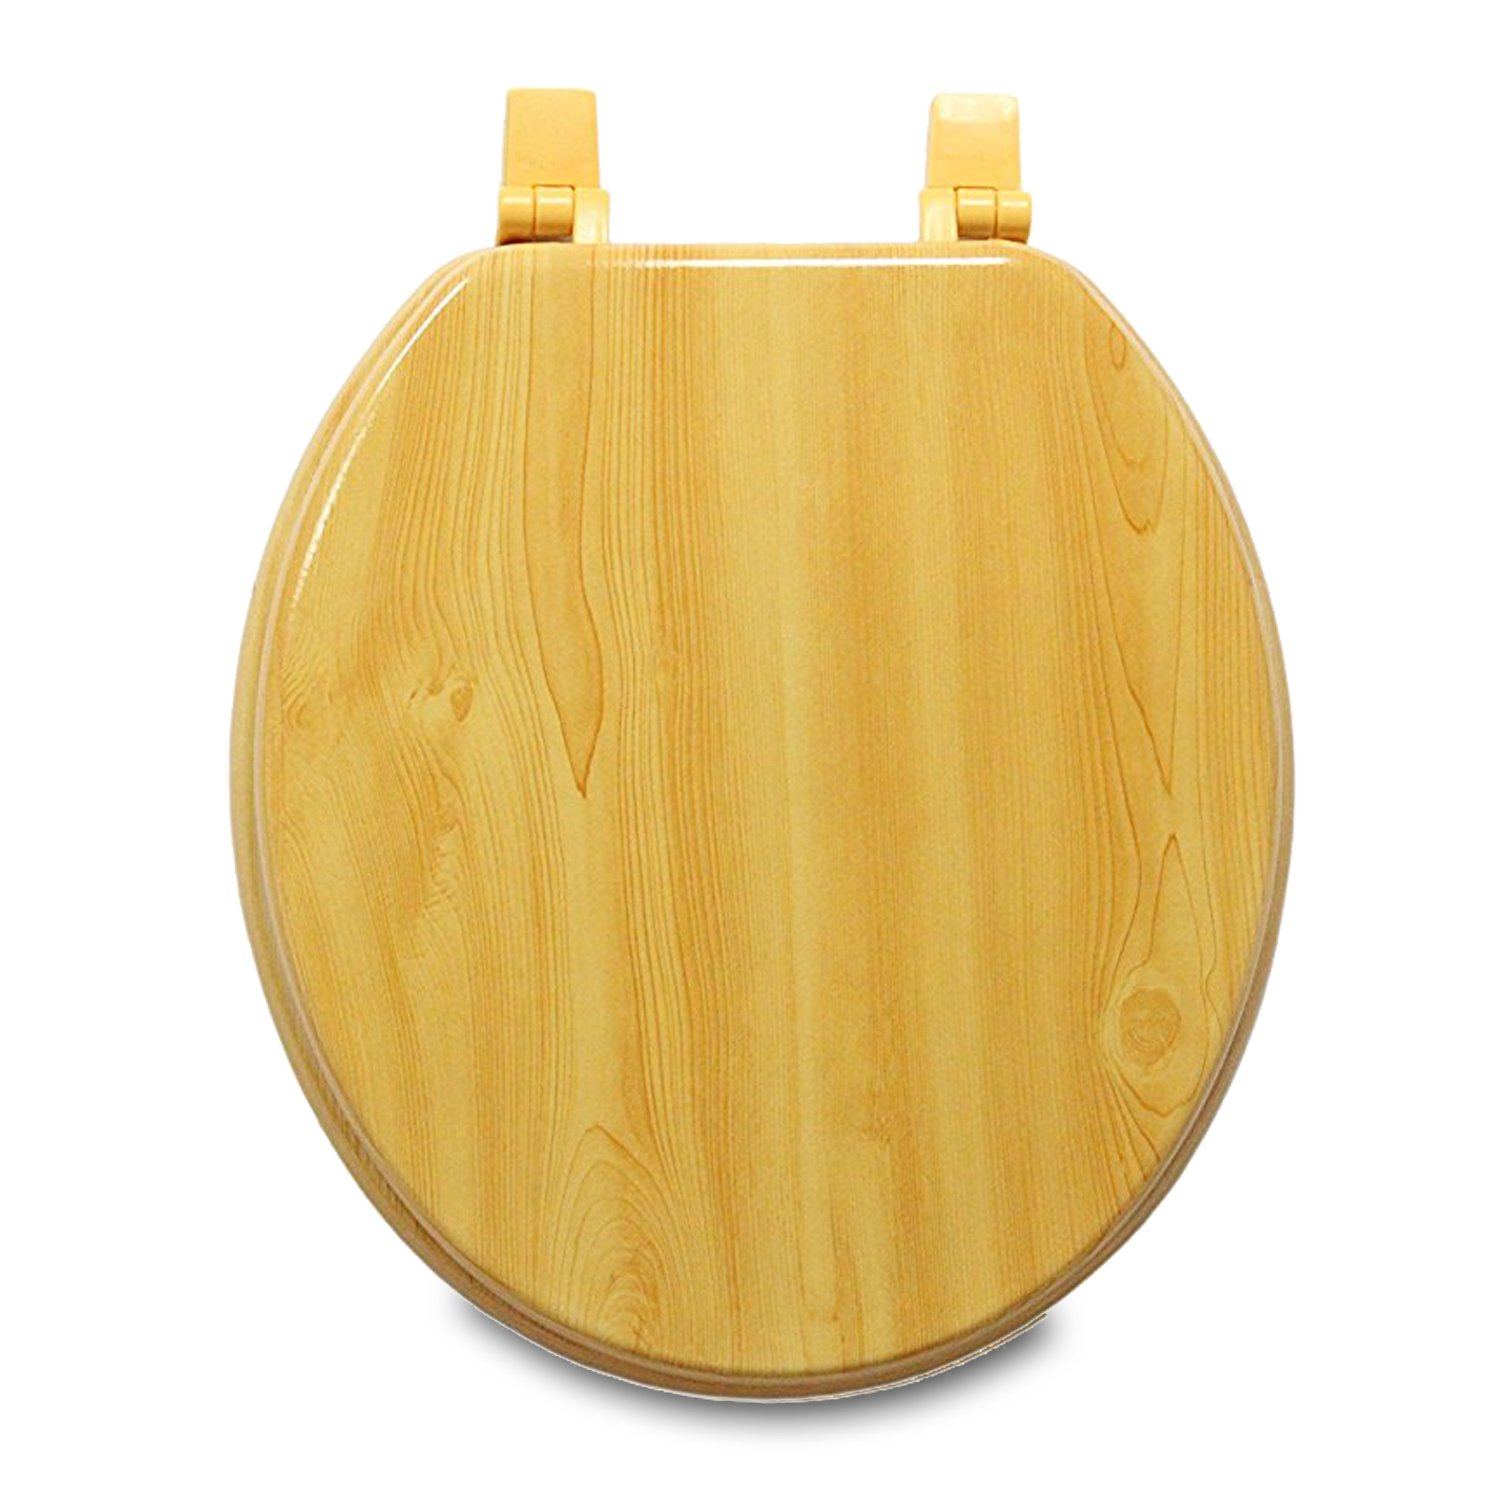 Trimmer Wood Grain Molded Seats With Oak Finish - Wood Composite with Water and Stain-resistant Finish